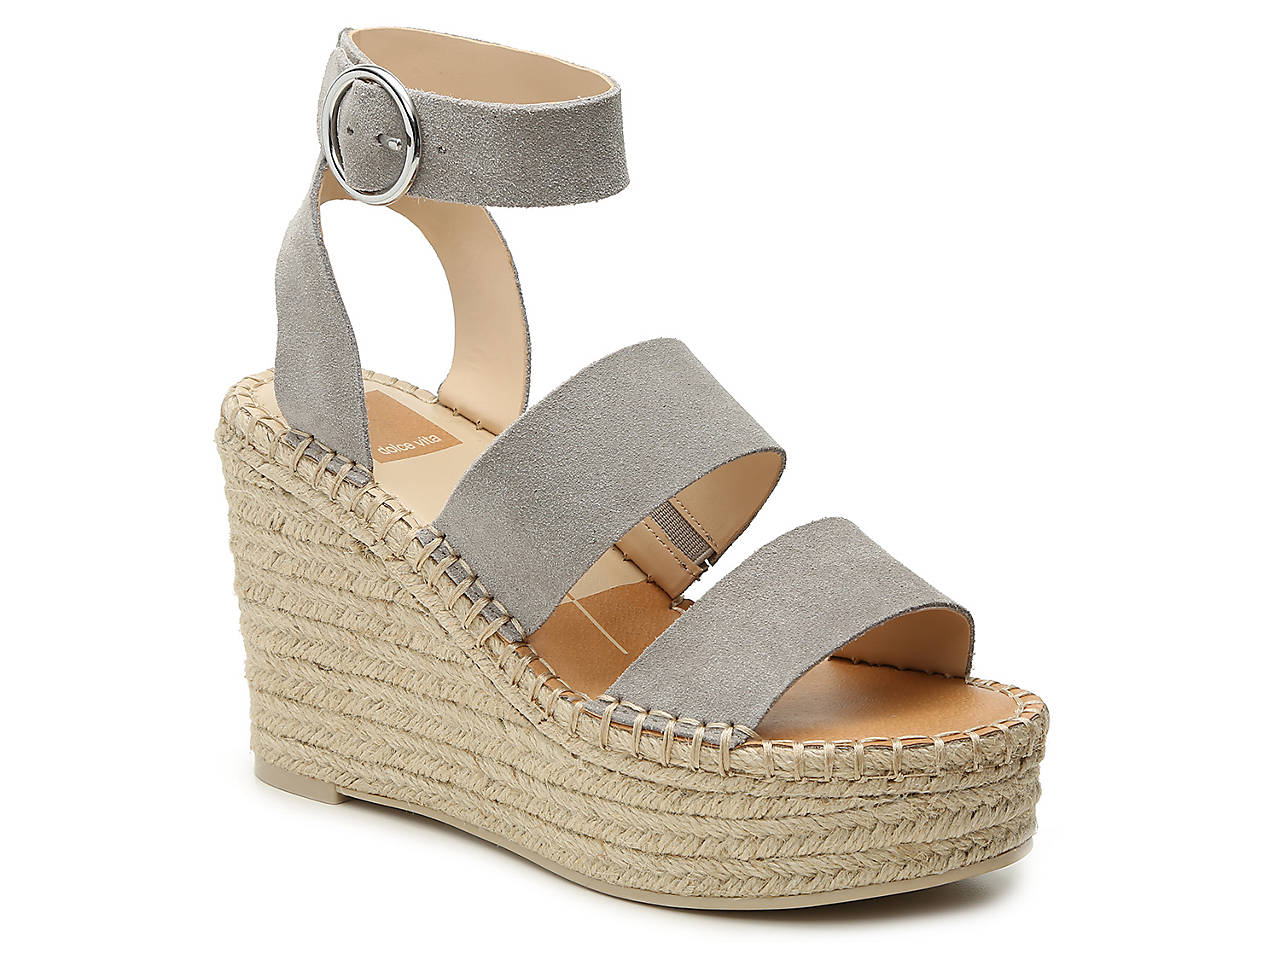 Women's Wedges | Wedge Sandals and Wedge Shoes at DSW | DSW